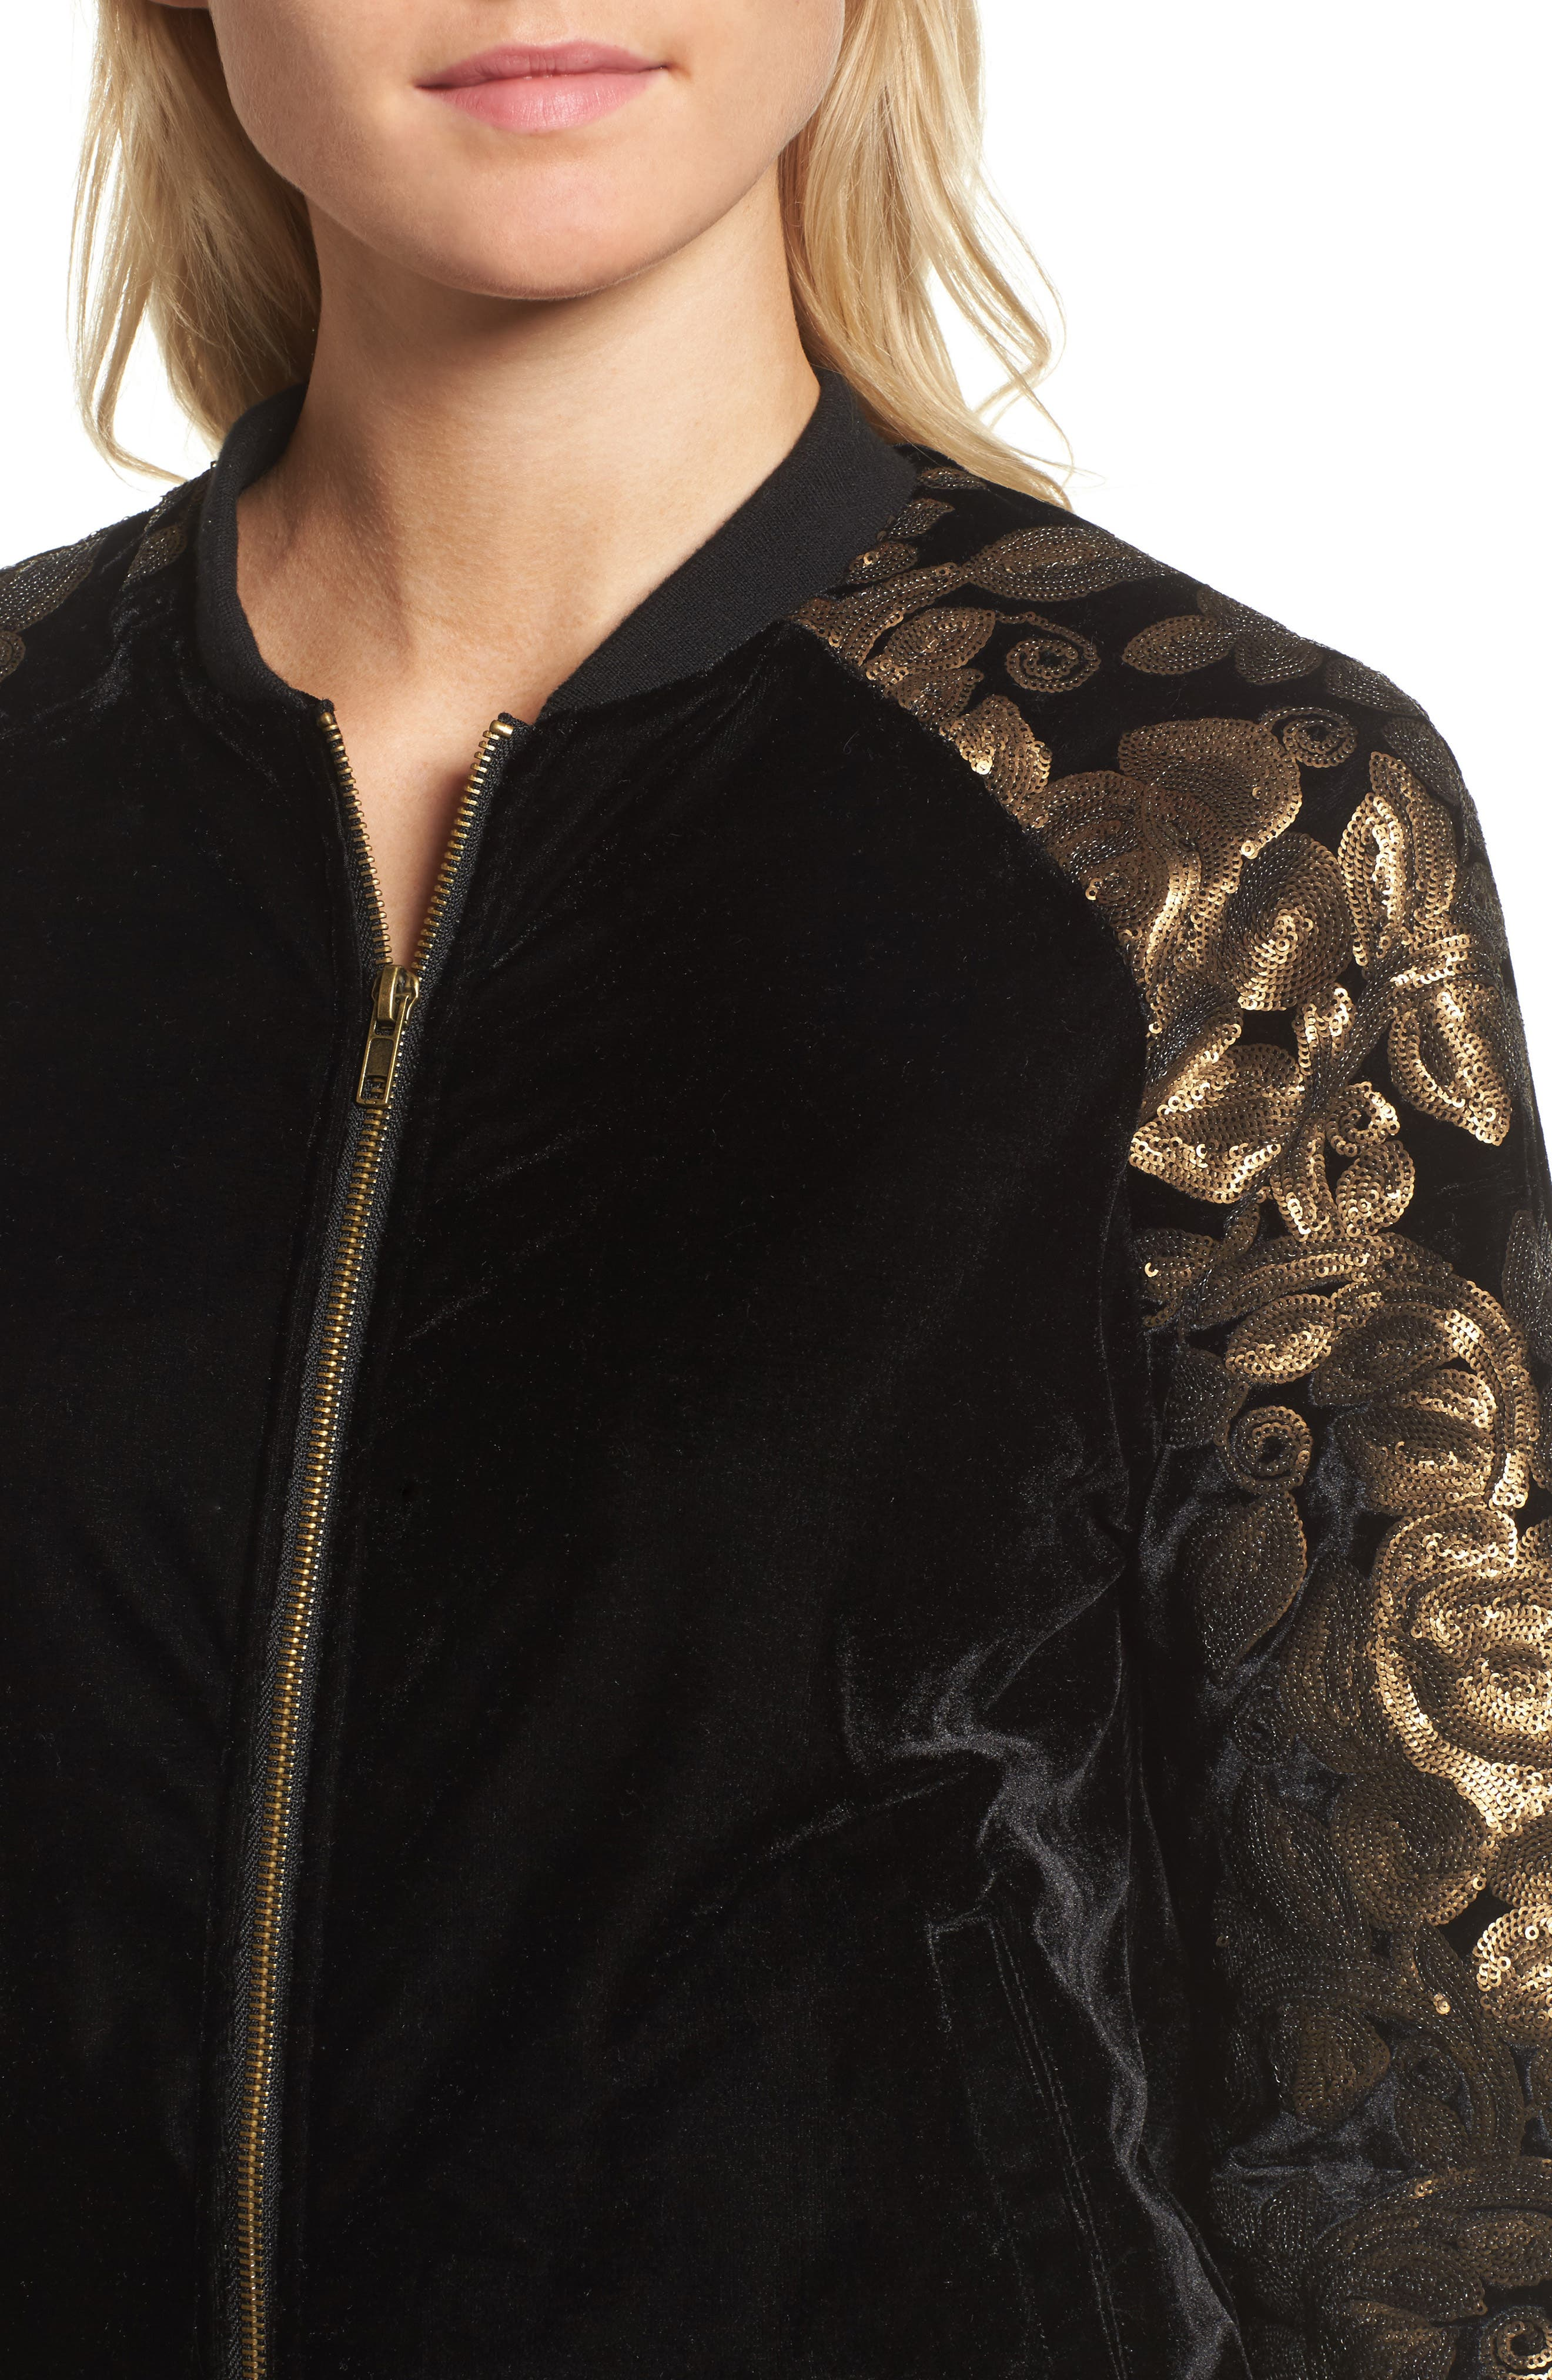 Axwell Bomber Jacket,                             Alternate thumbnail 4, color,                             001